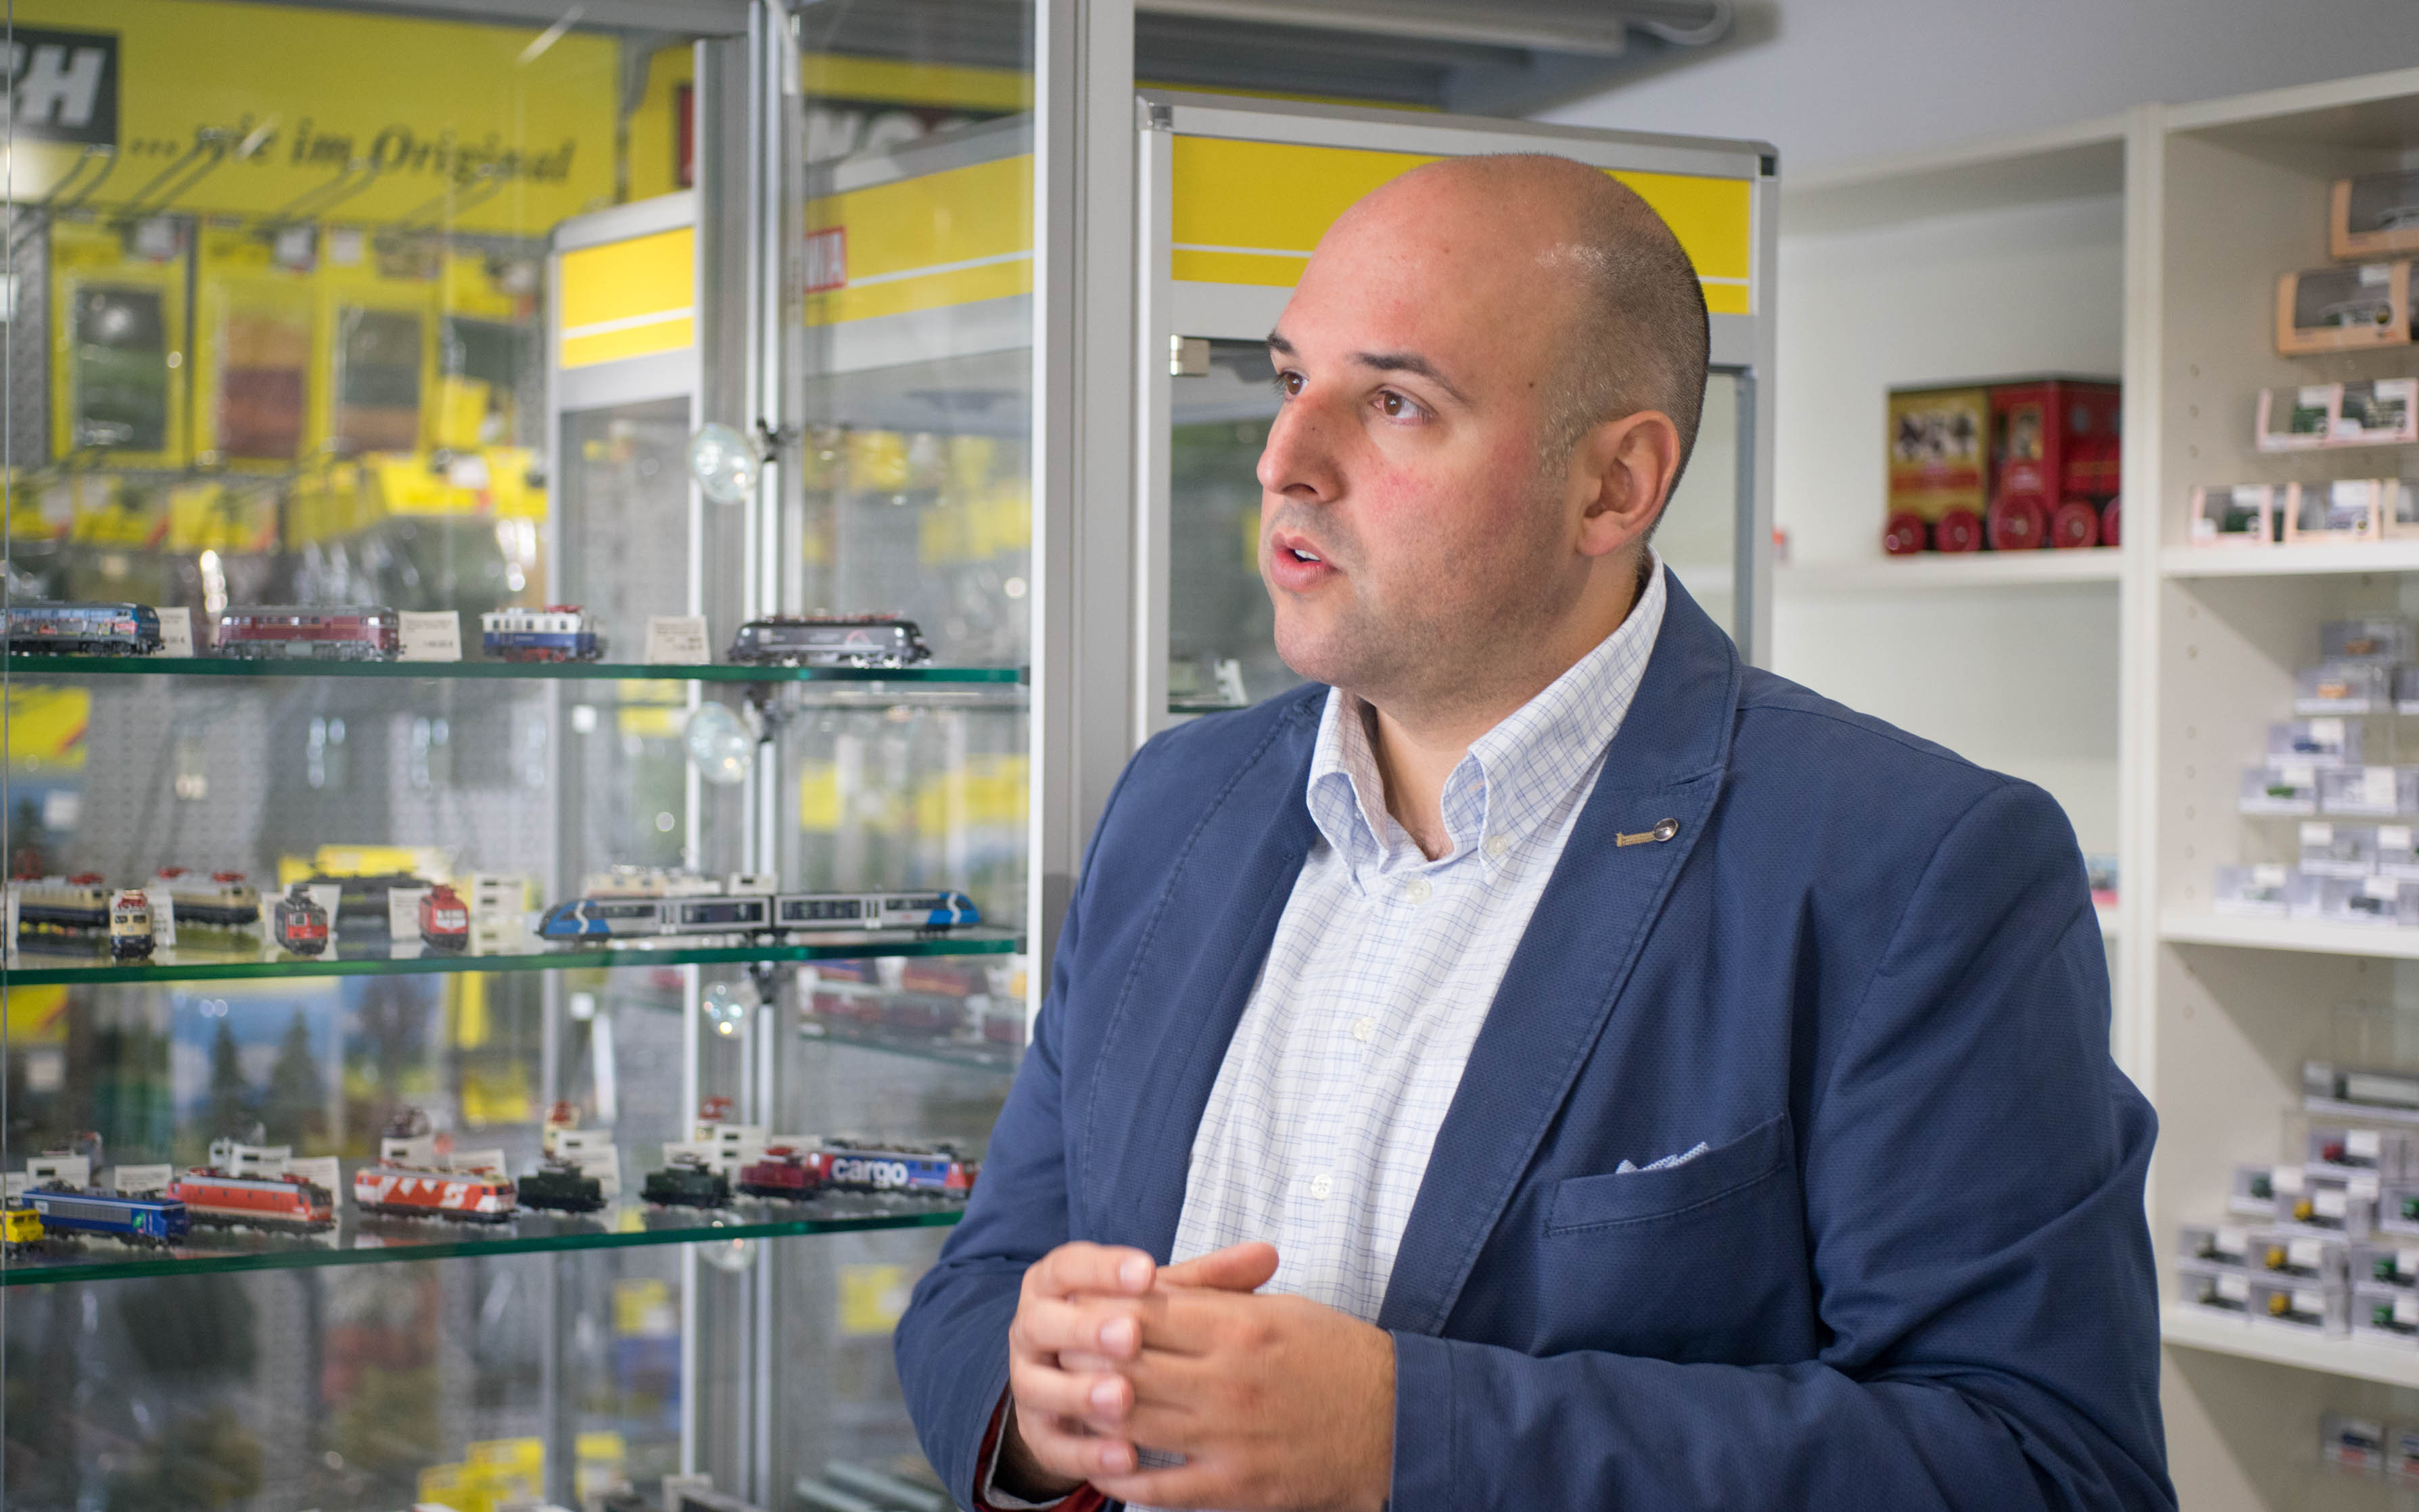 Daniel Mrugalski is passionate about trains. He is the managing director of DM-Toys, Europe's market leader for N scale products (1:160). Photo: Ken Giang